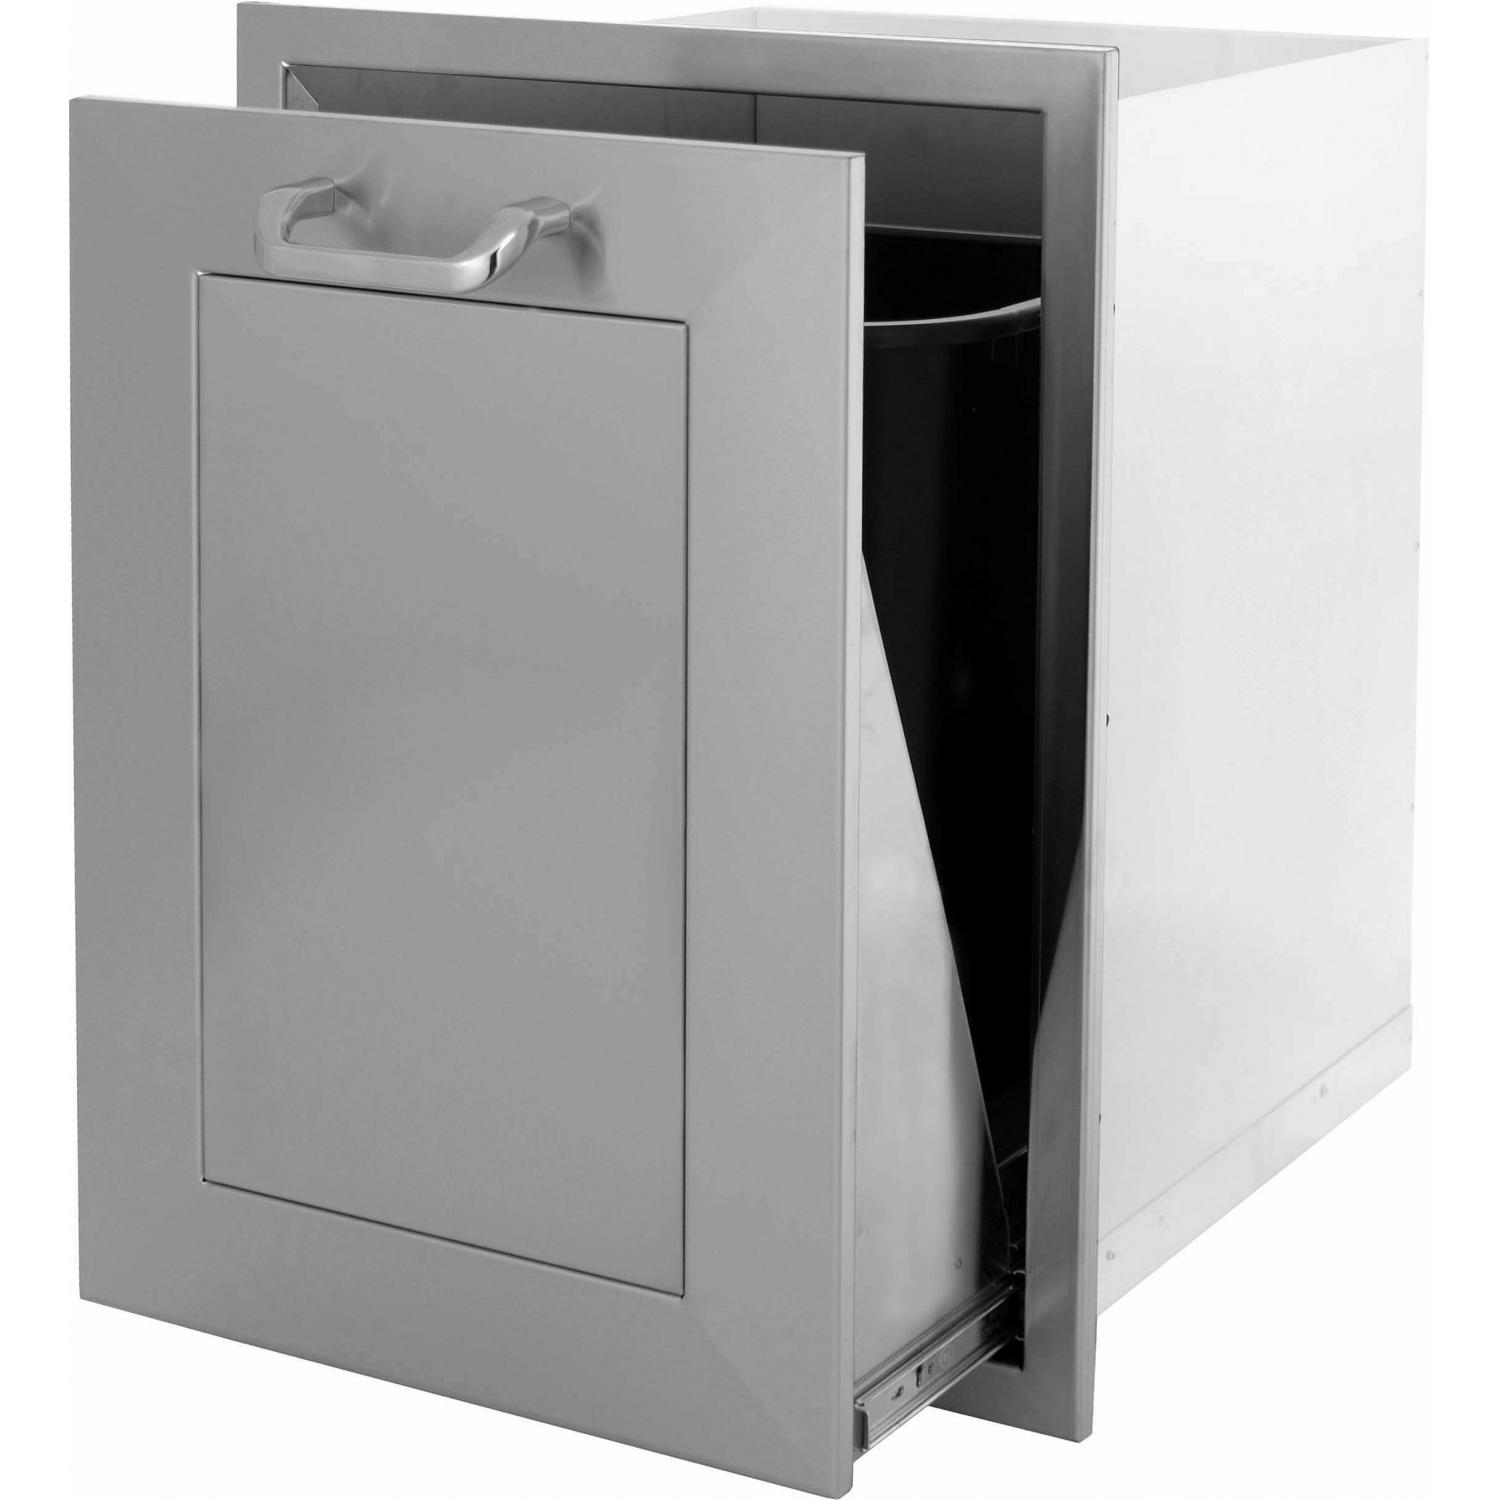 Kingston Panel Series Roll Out Trash Bin